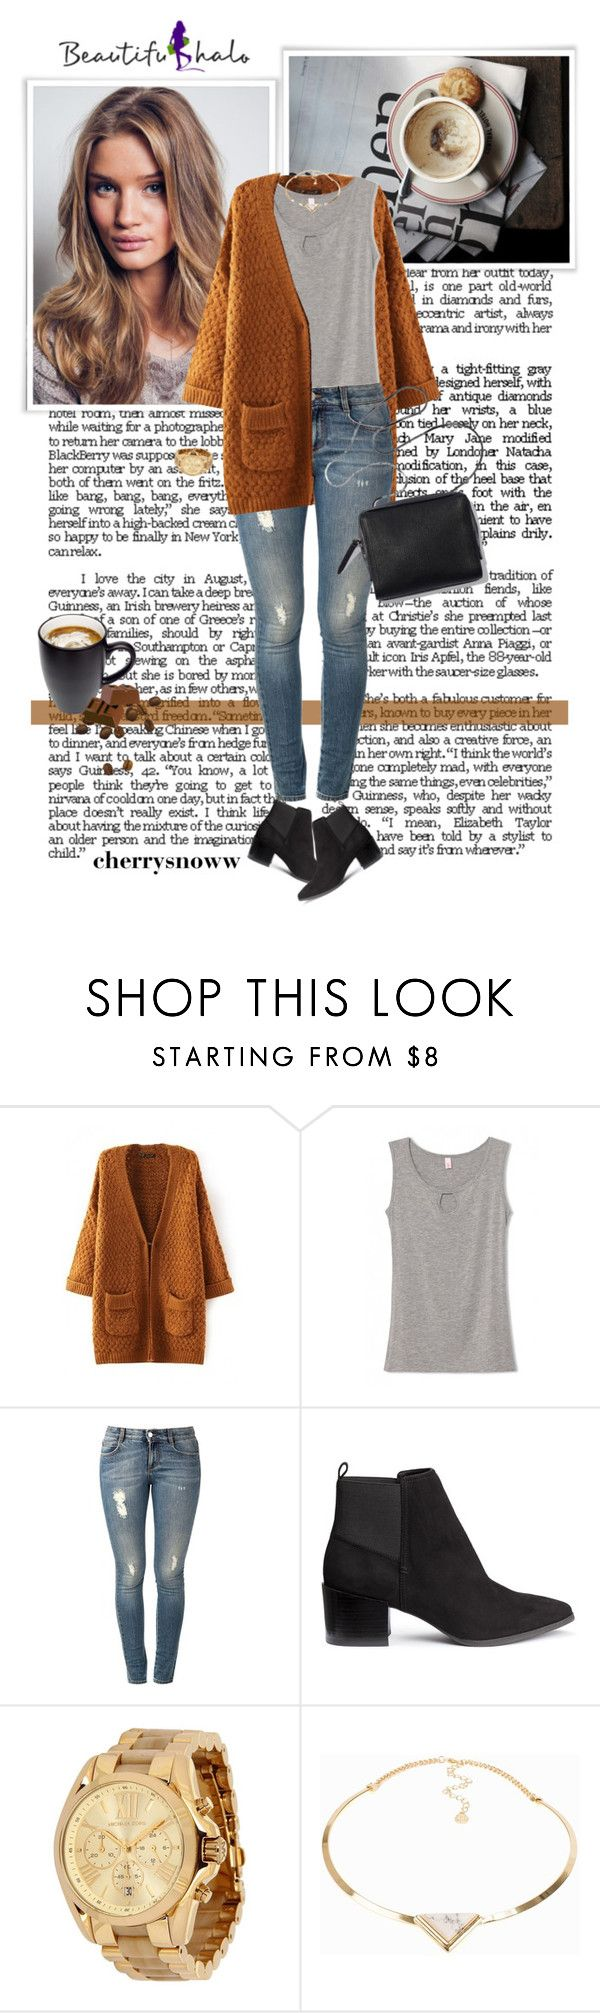 """Casual rainy day fall outfit"" by cherrysnoww ❤ liked on Polyvore featuring STELLA McCARTNEY, H&M, Michael Kors and Pieces"